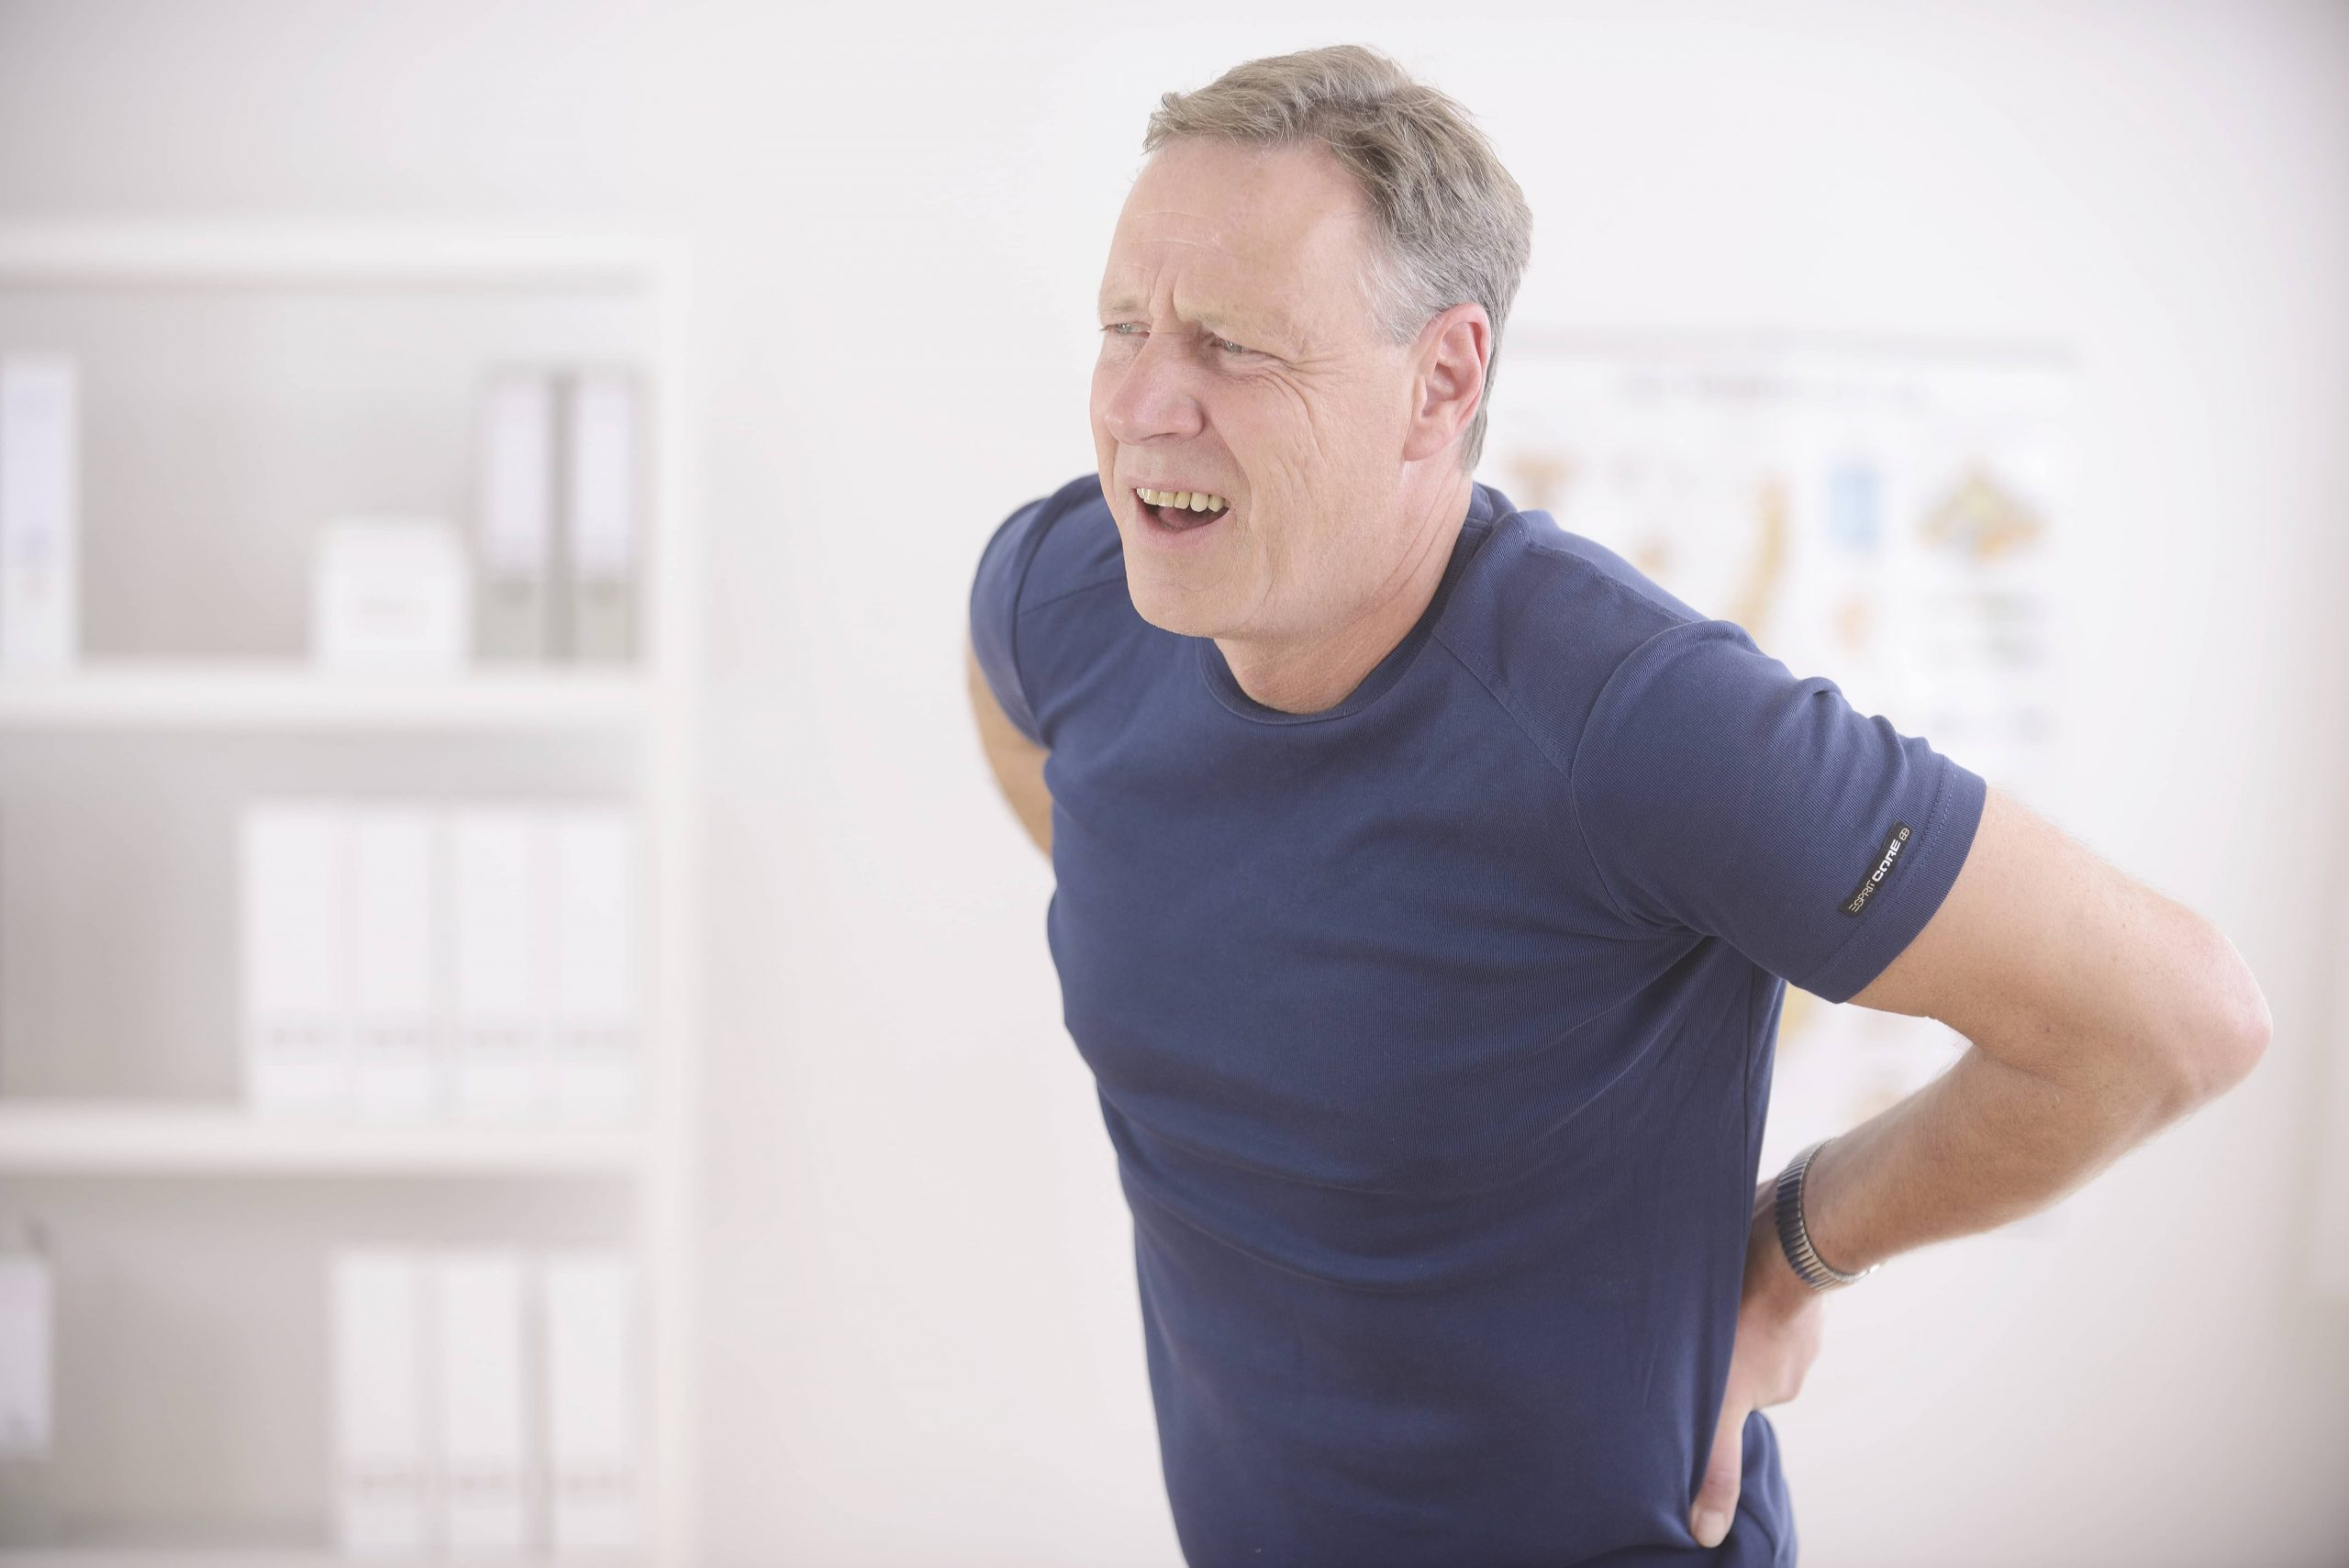 back pain conditions and treatments